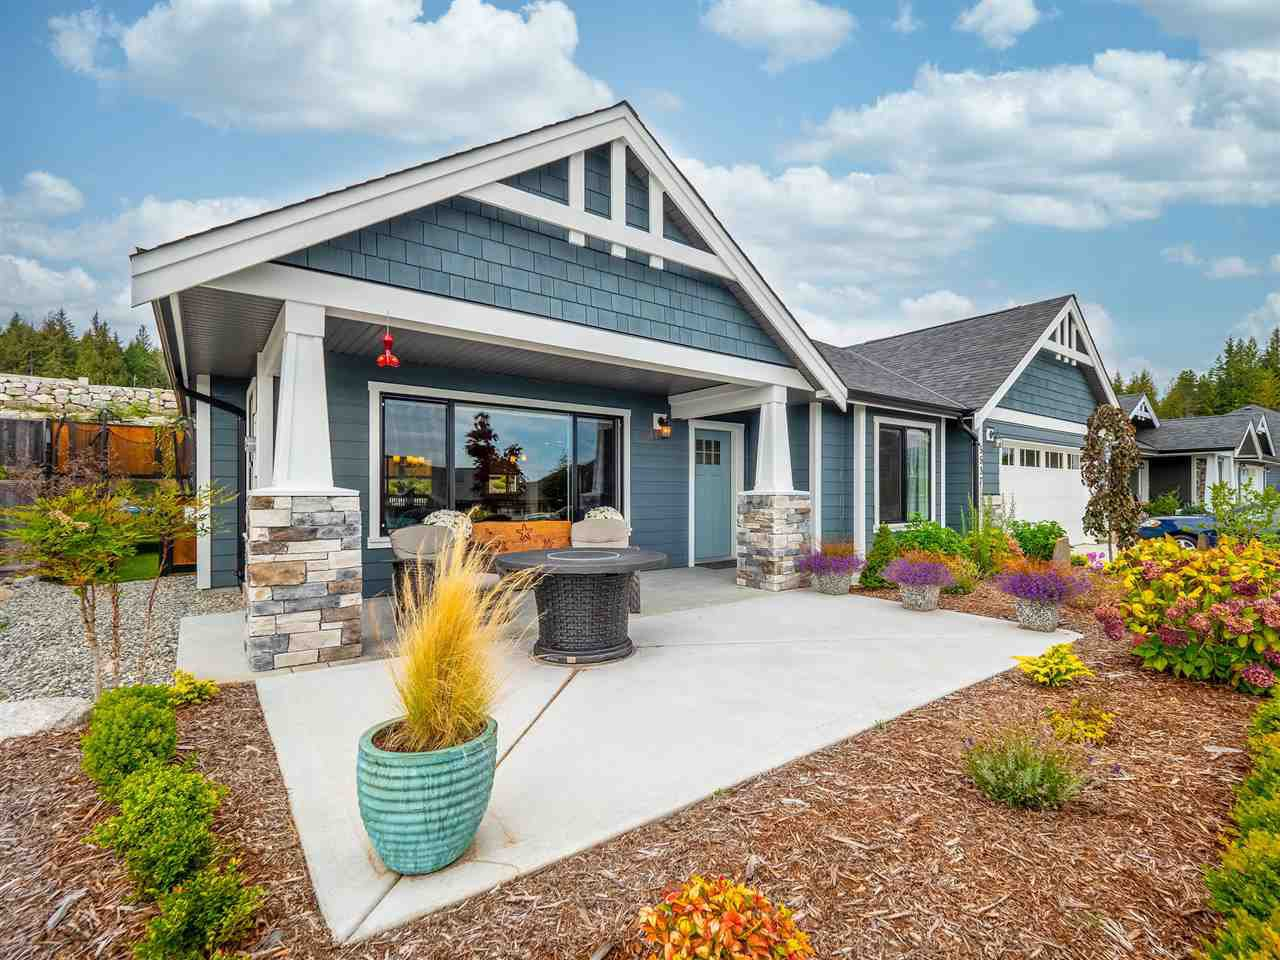 """Main Photo: 5537 PEREGRINE Crescent in Sechelt: Sechelt District House for sale in """"Silverstone Heights"""" (Sunshine Coast)  : MLS®# R2499583"""